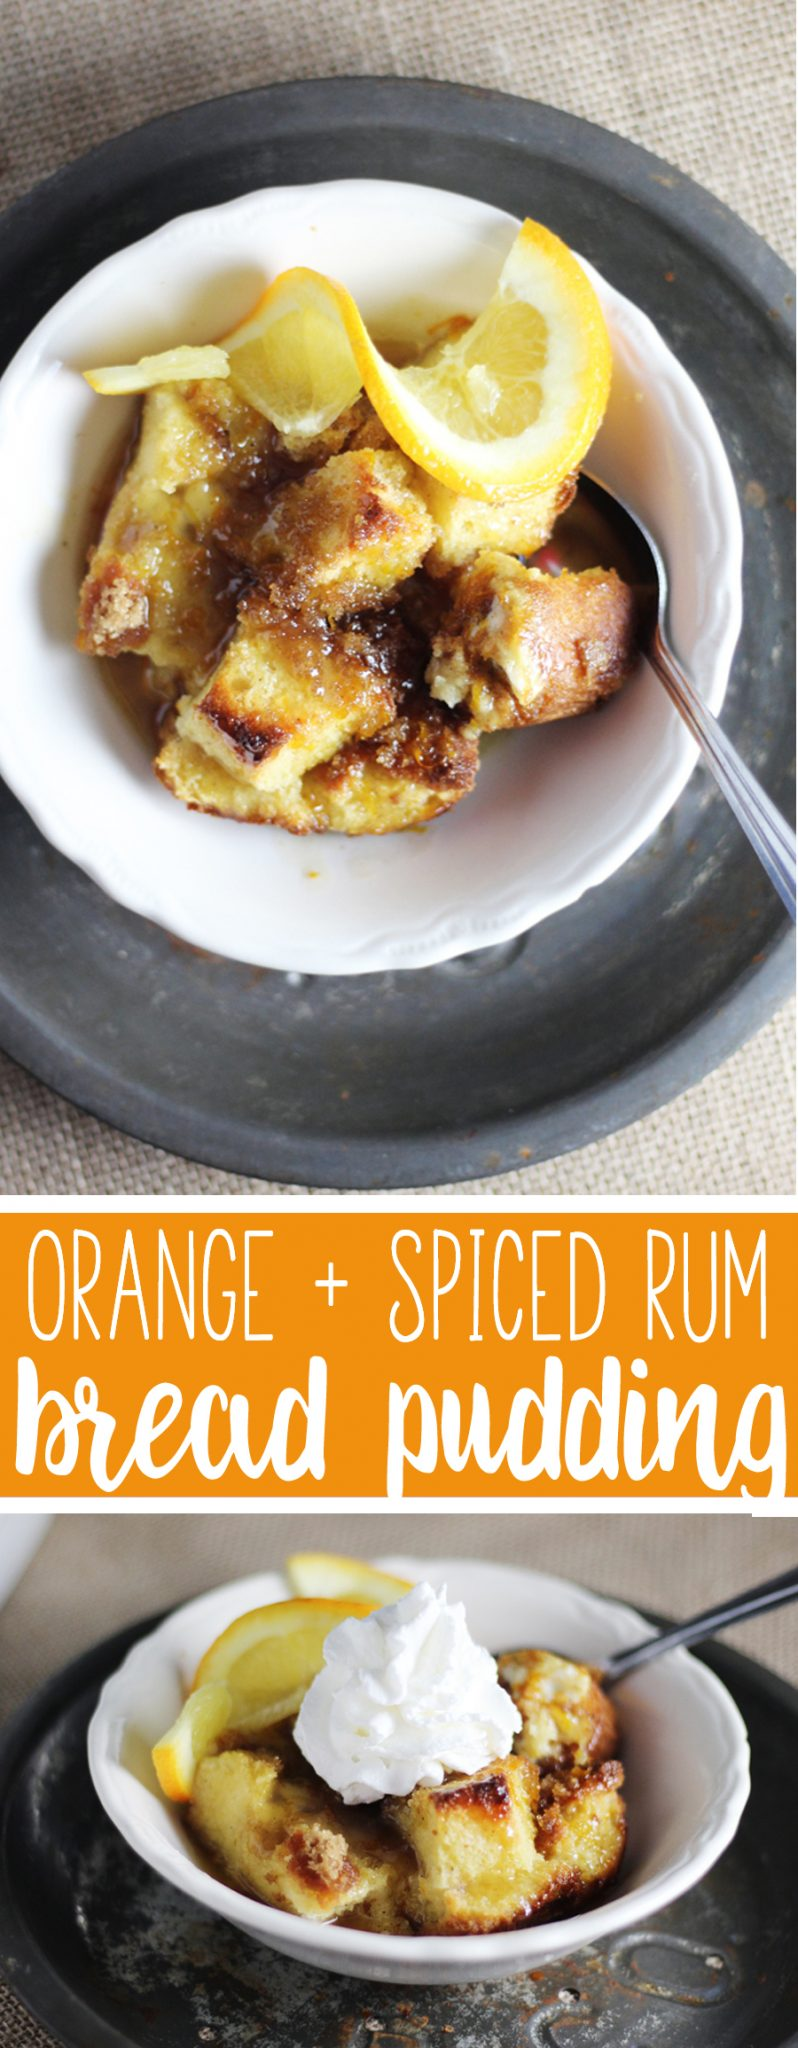 Fresh orange + spiced dark rum + buttery pound cake combine to give this classic bread pudding an amazing new twist. Orange + Spiced Rum Bread Pudding.  #breadpudding #spicedrum #holidaybaking